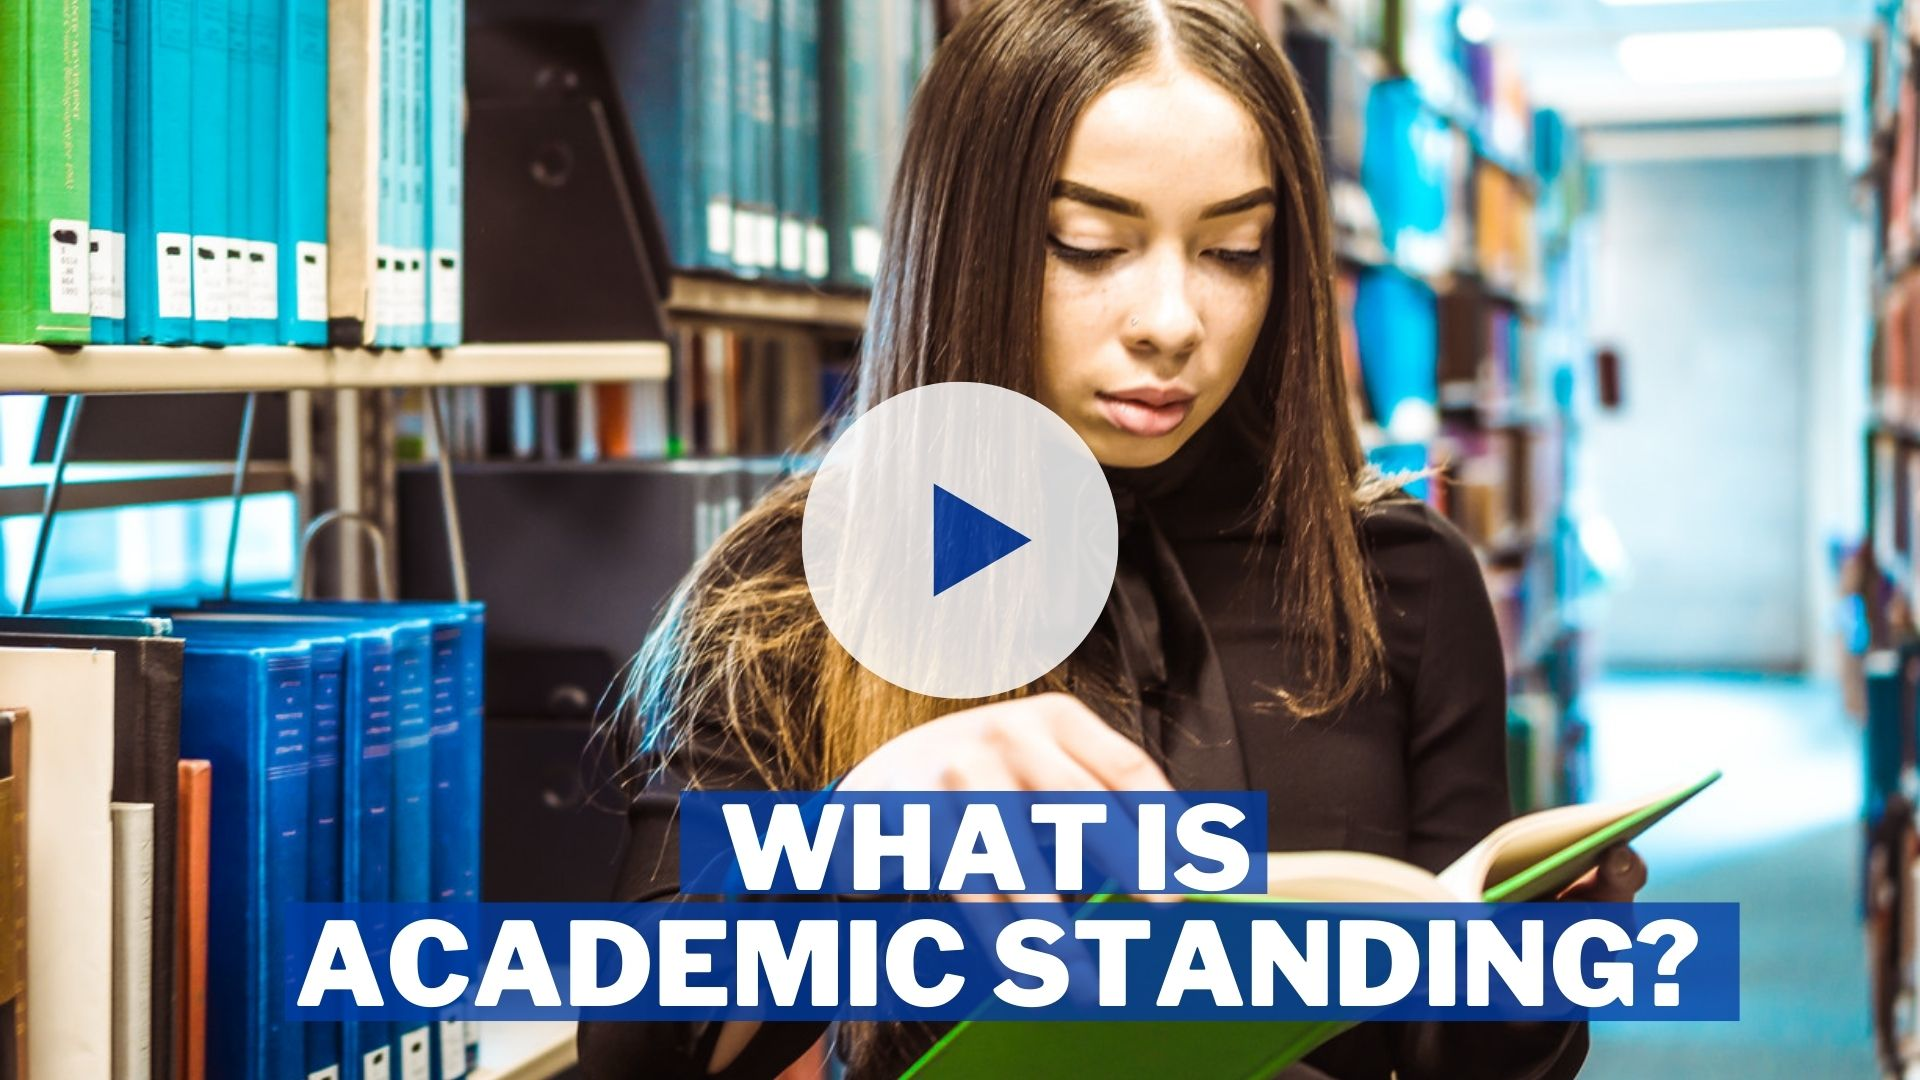 What is Academic Standing?